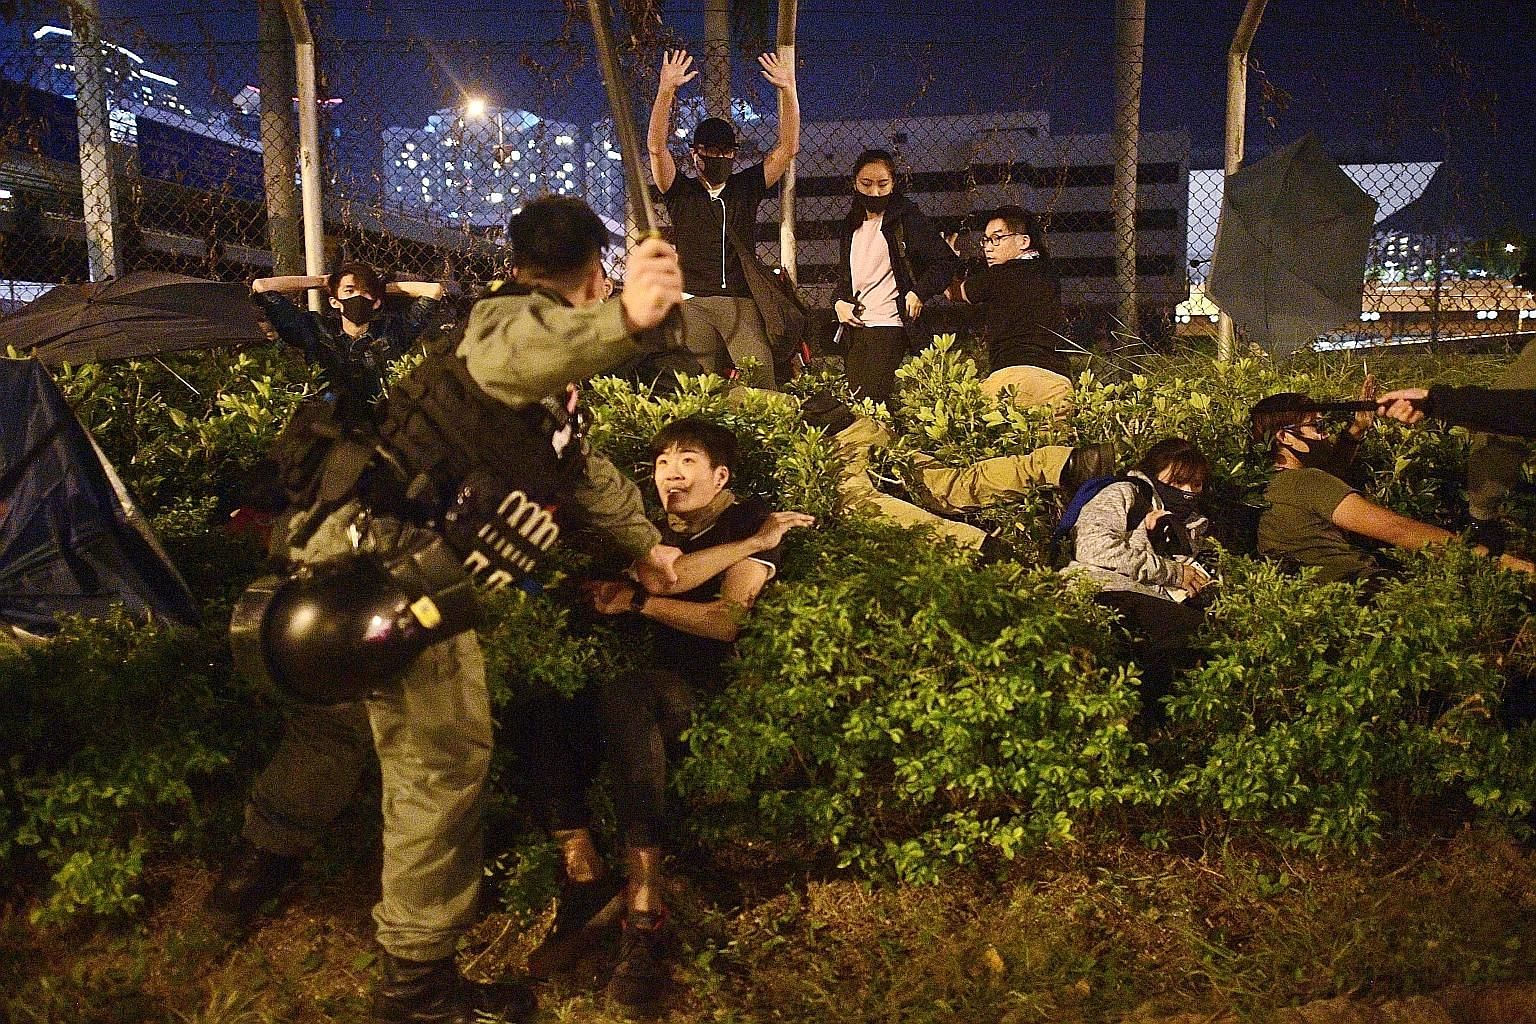 Left: Police detaining protesters trying to flee The Hong Kong Polytechnic University campus yesterday. Right: Protesters waiting to receive medical attention after leaving the campus yesterday. The city's Hospital Authority said 235 injured were tak